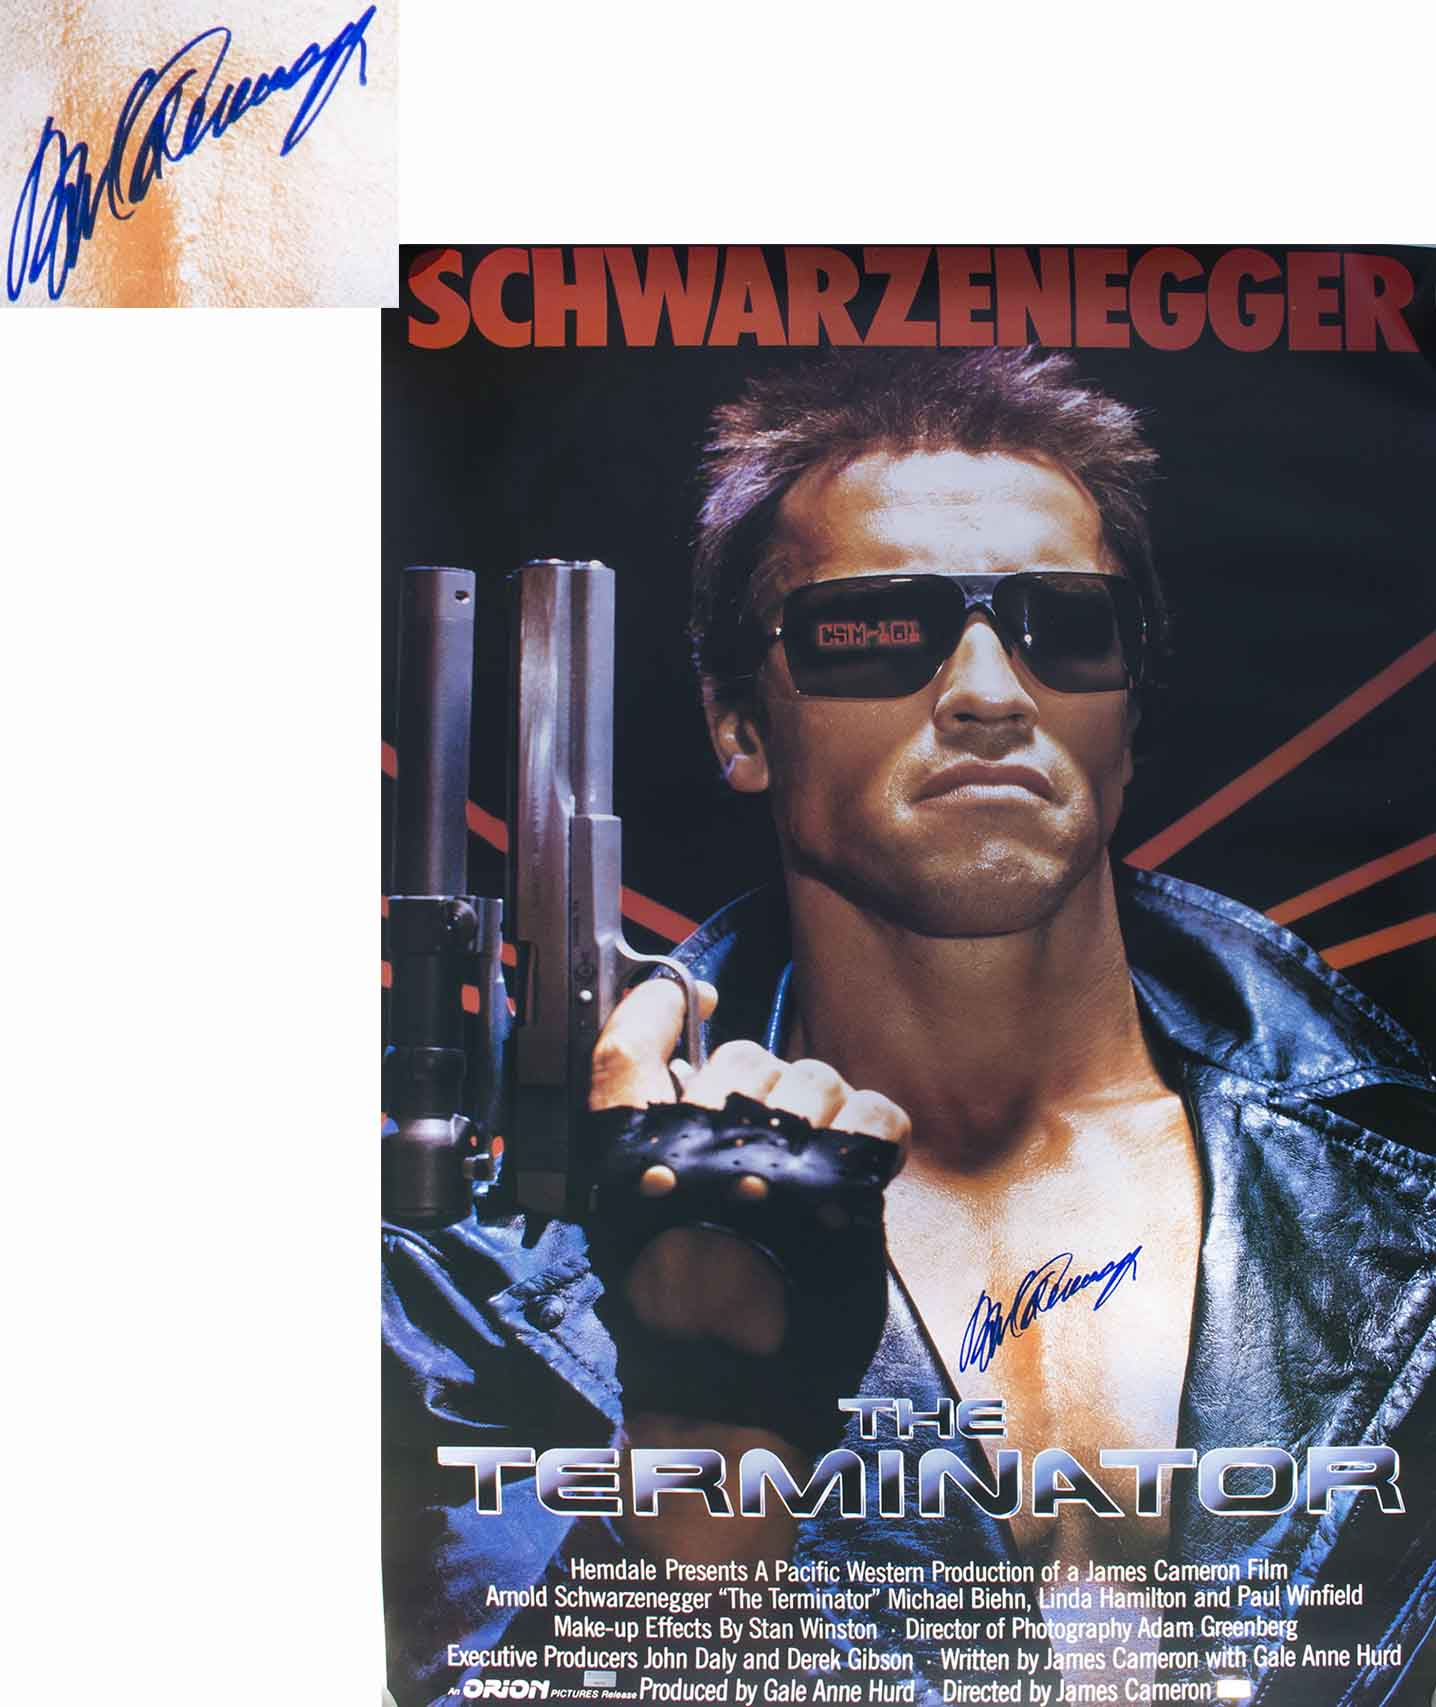 Lot Detail - Arnold Schwarzenegger Signed ''The Terminator'' Movie